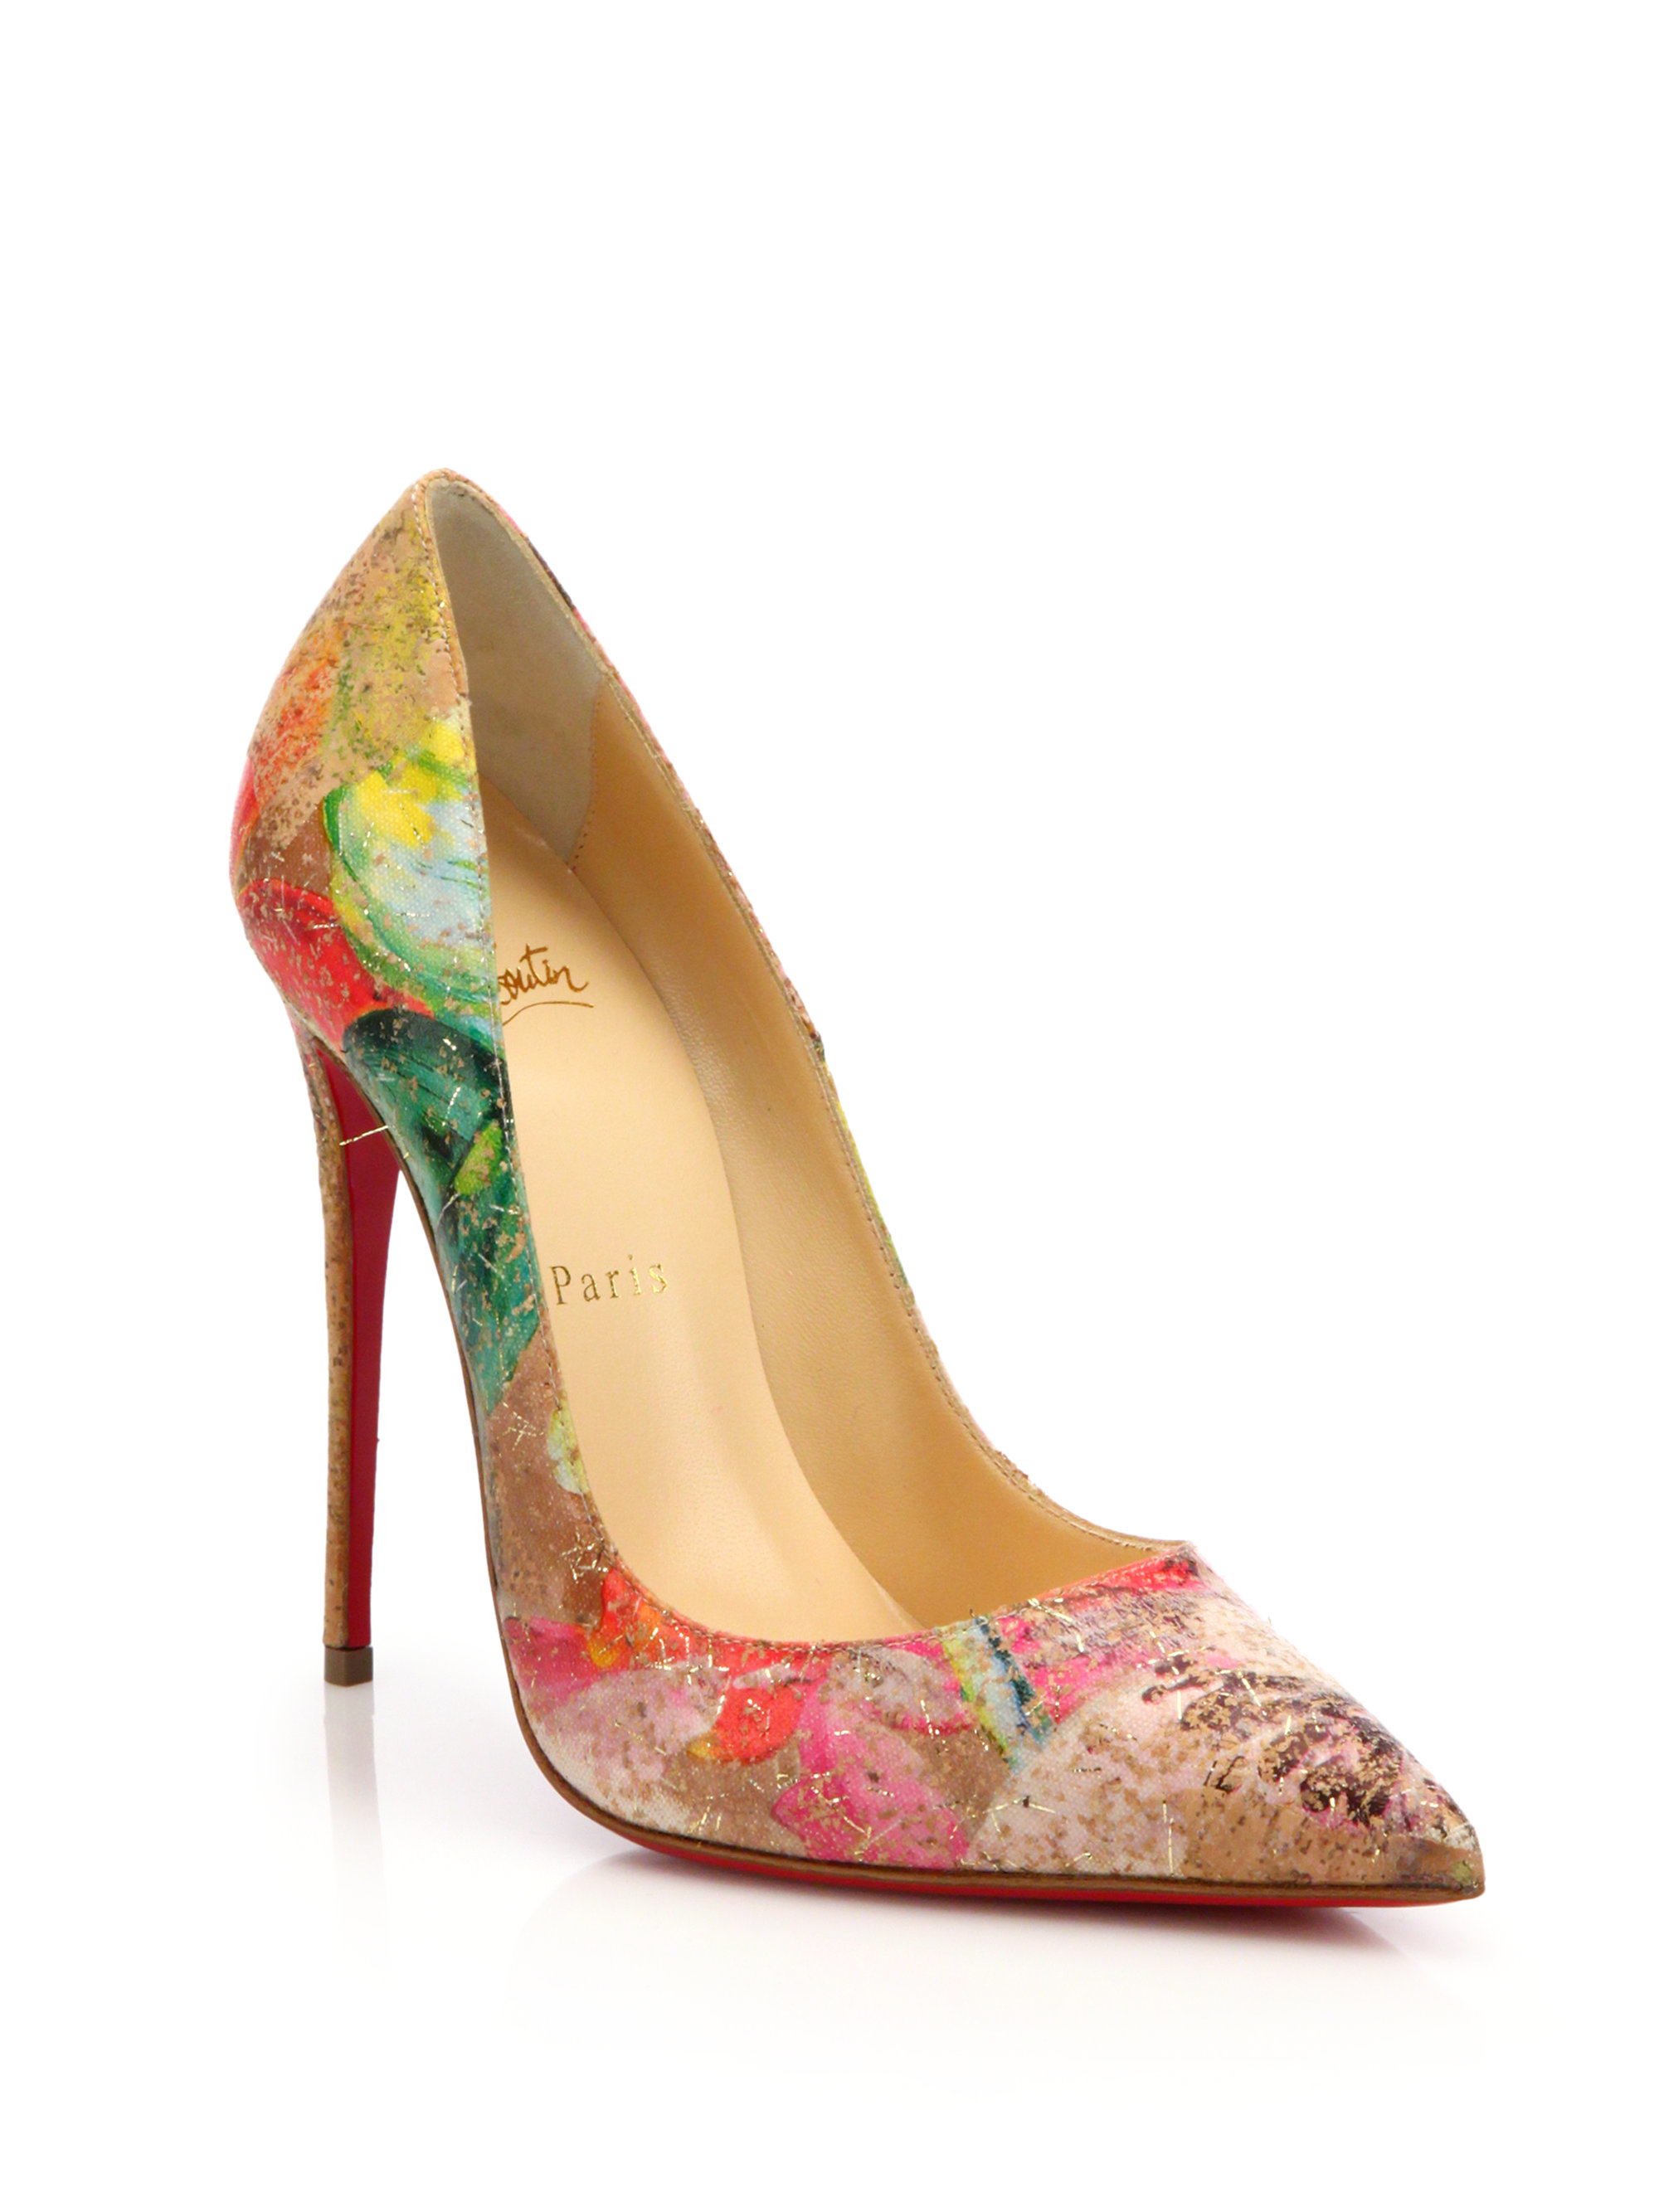 96873b3ca064 Gallery. Previously sold at  Saks Fifth Avenue · Women s Christian  Louboutin So Kate ...